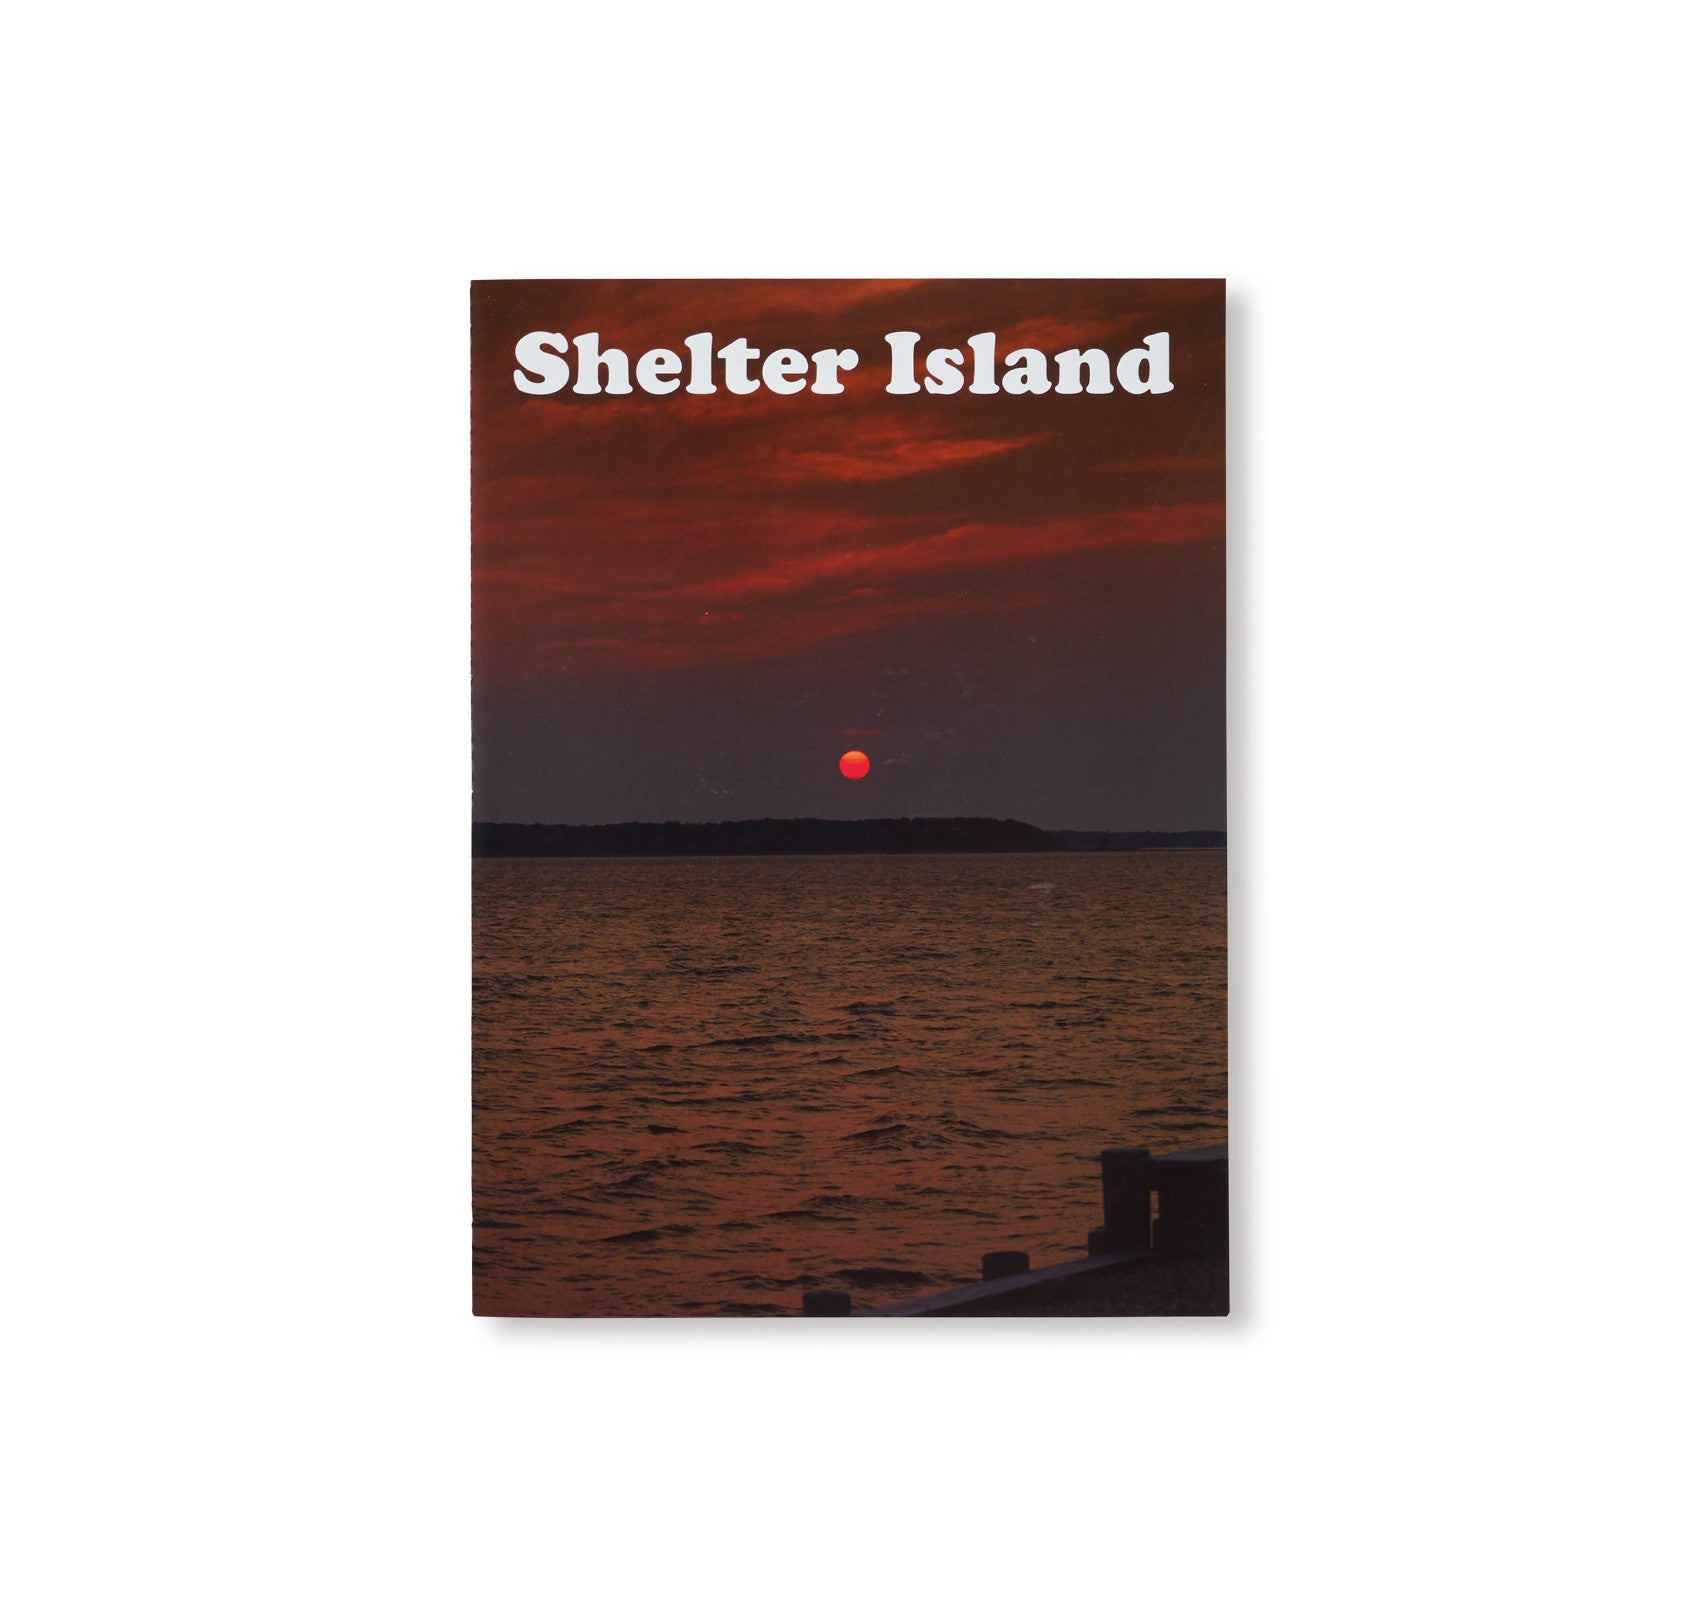 SHELTER ISLAND by Roe Ethridge